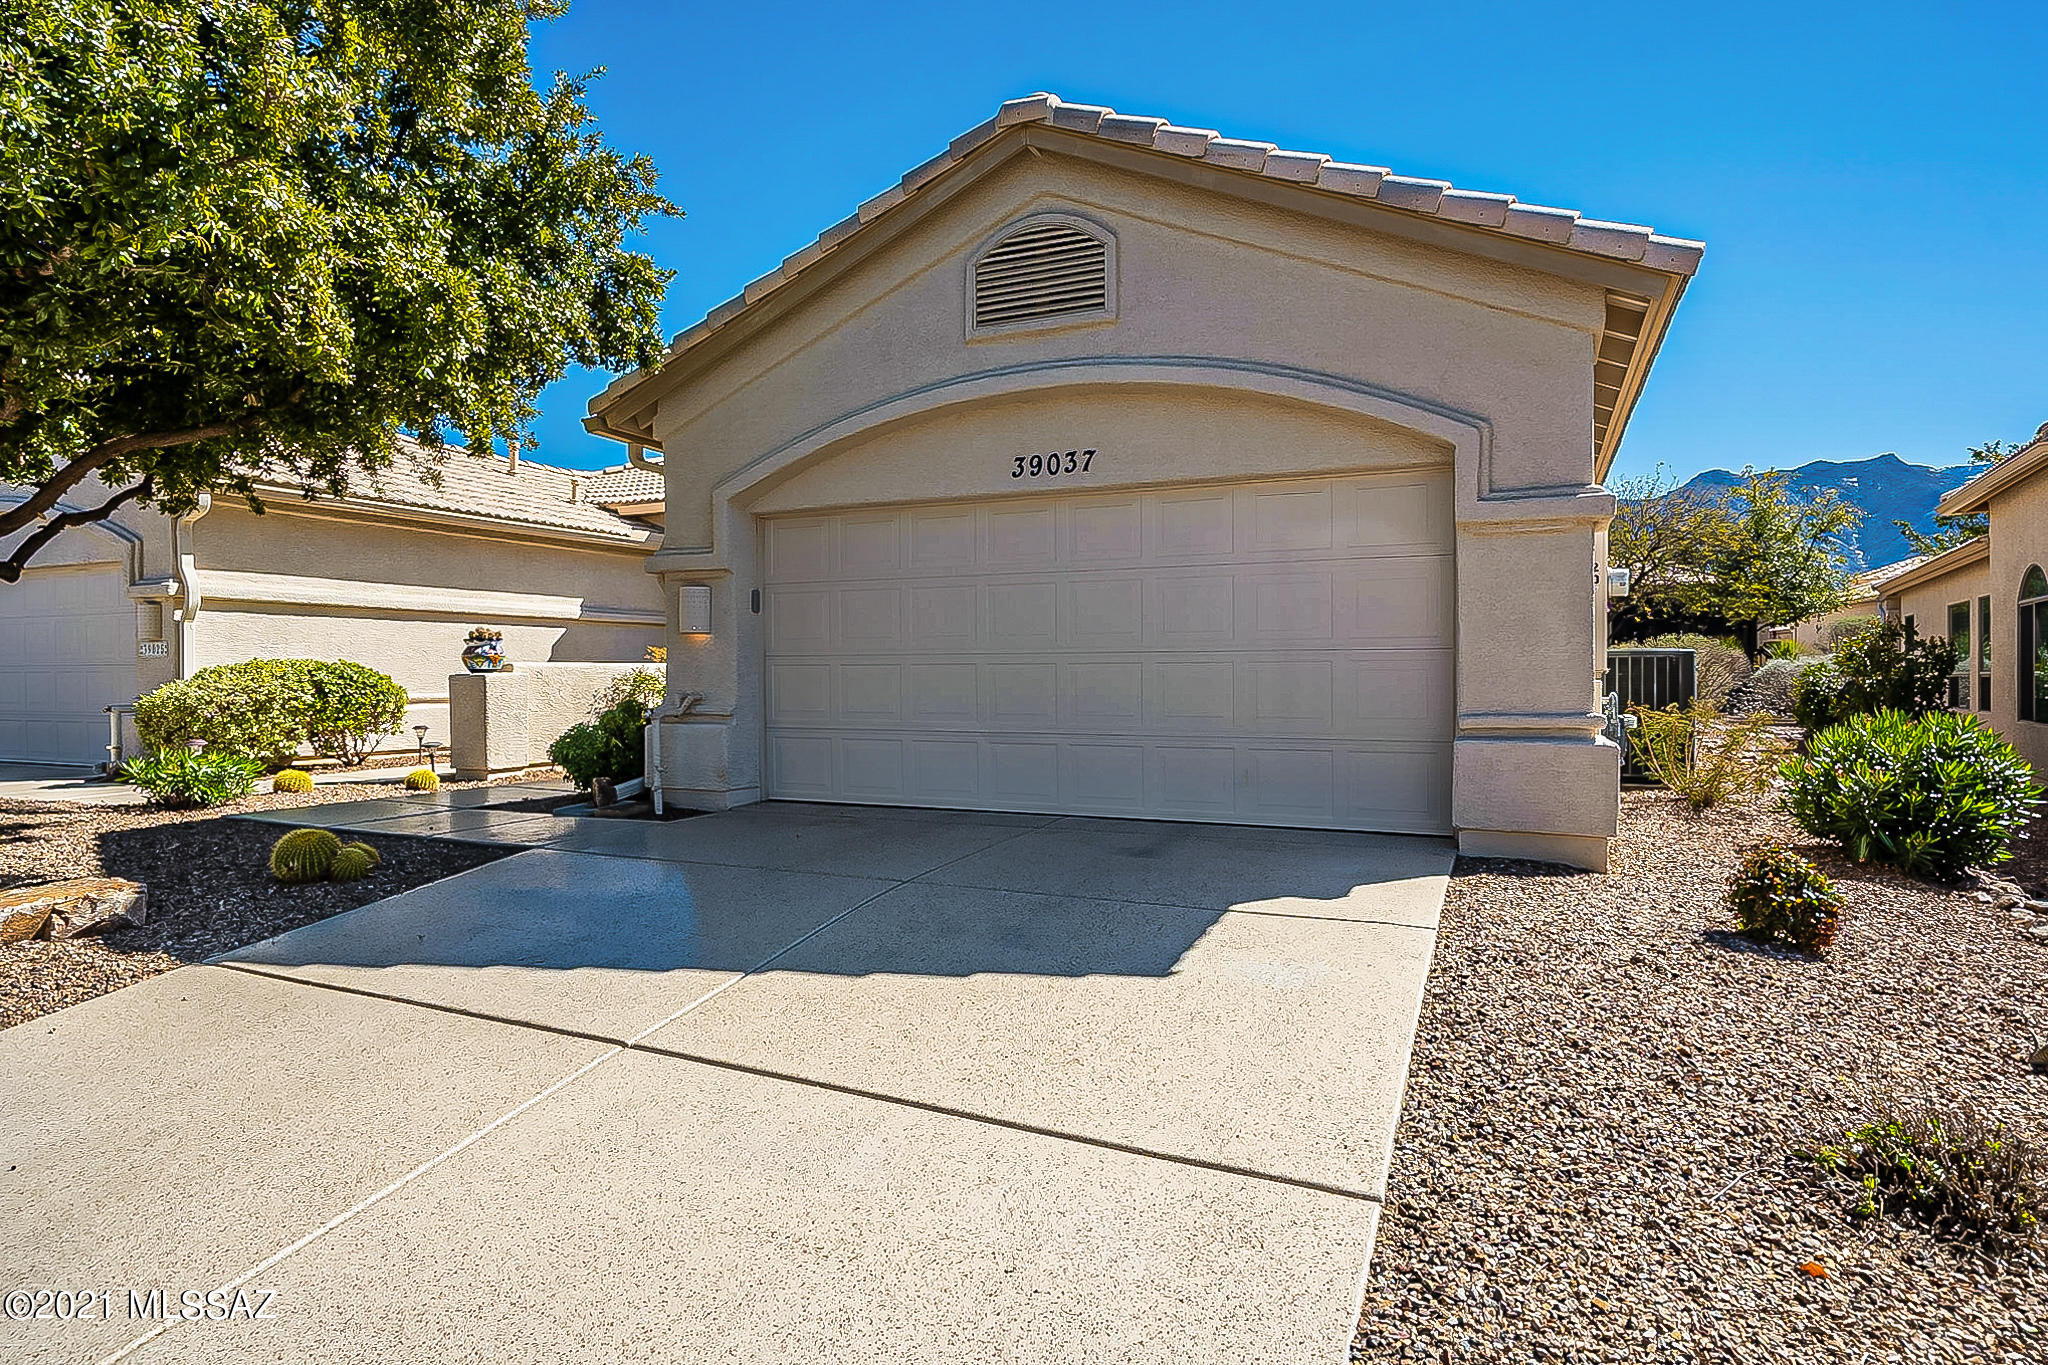 Photo of 39037 S Casual Drive, Tucson, AZ 85739